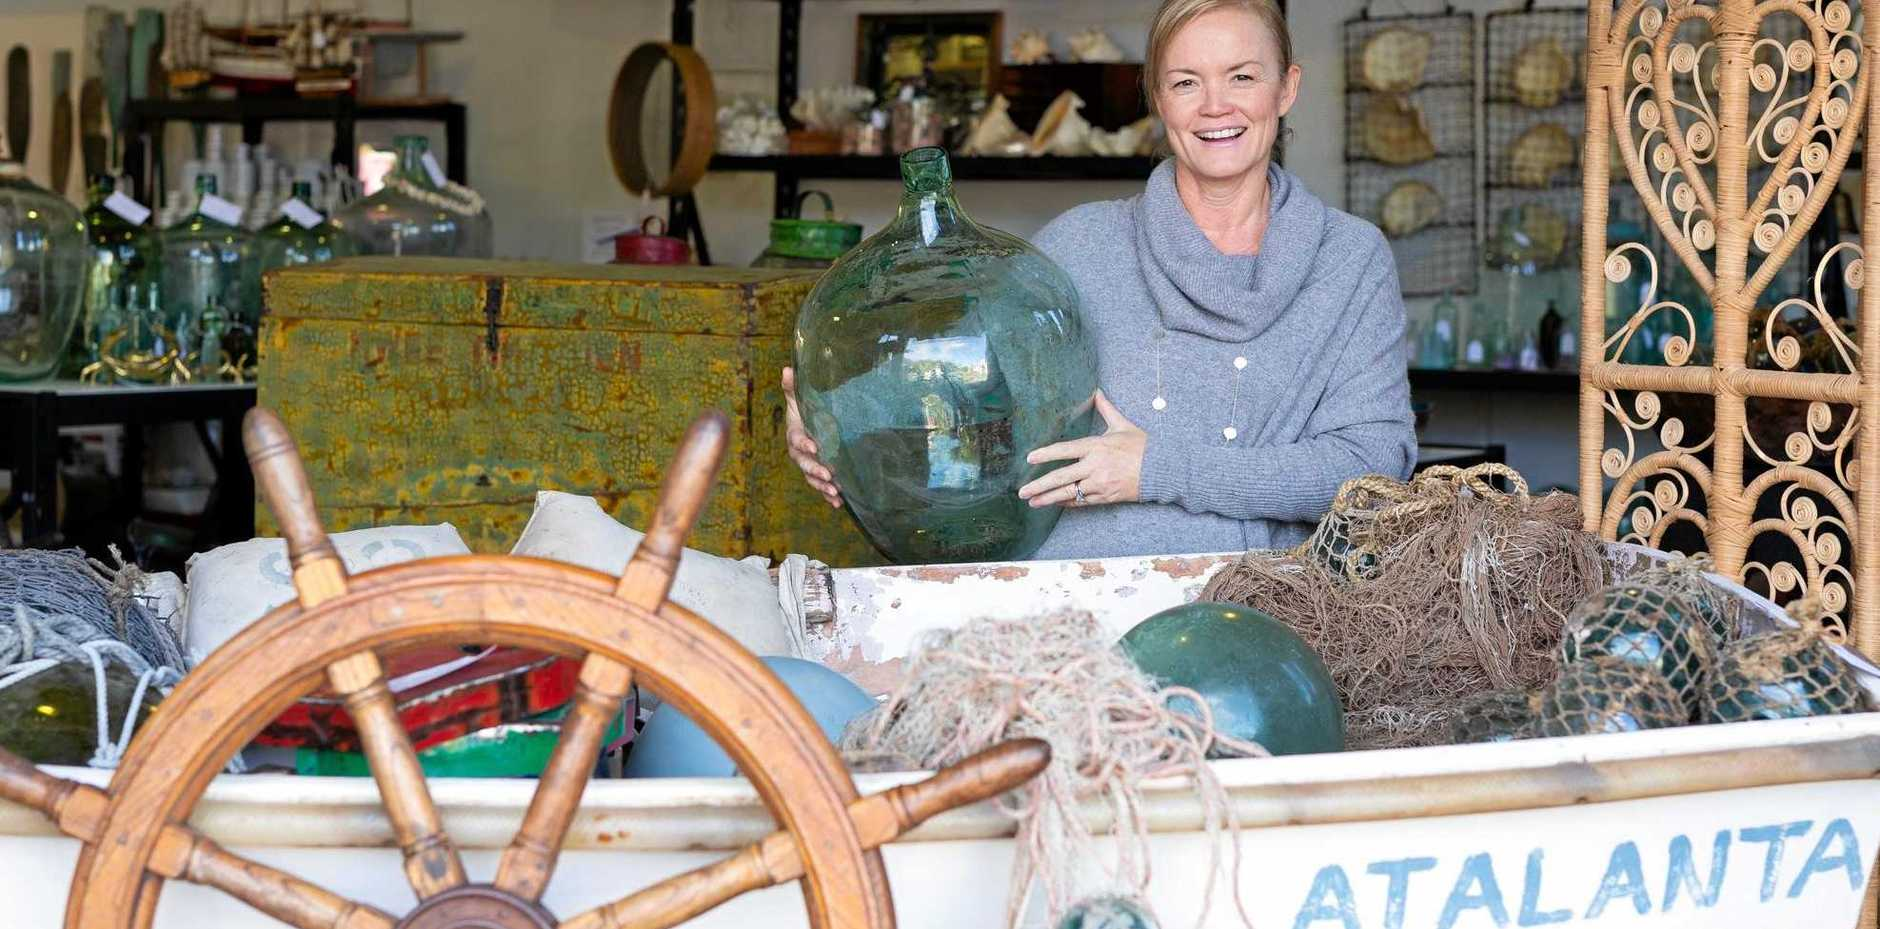 UPCYCLE: Coastal Vintage's Sally Oulton talks coastal charm and gives her best winter home decorating tips.